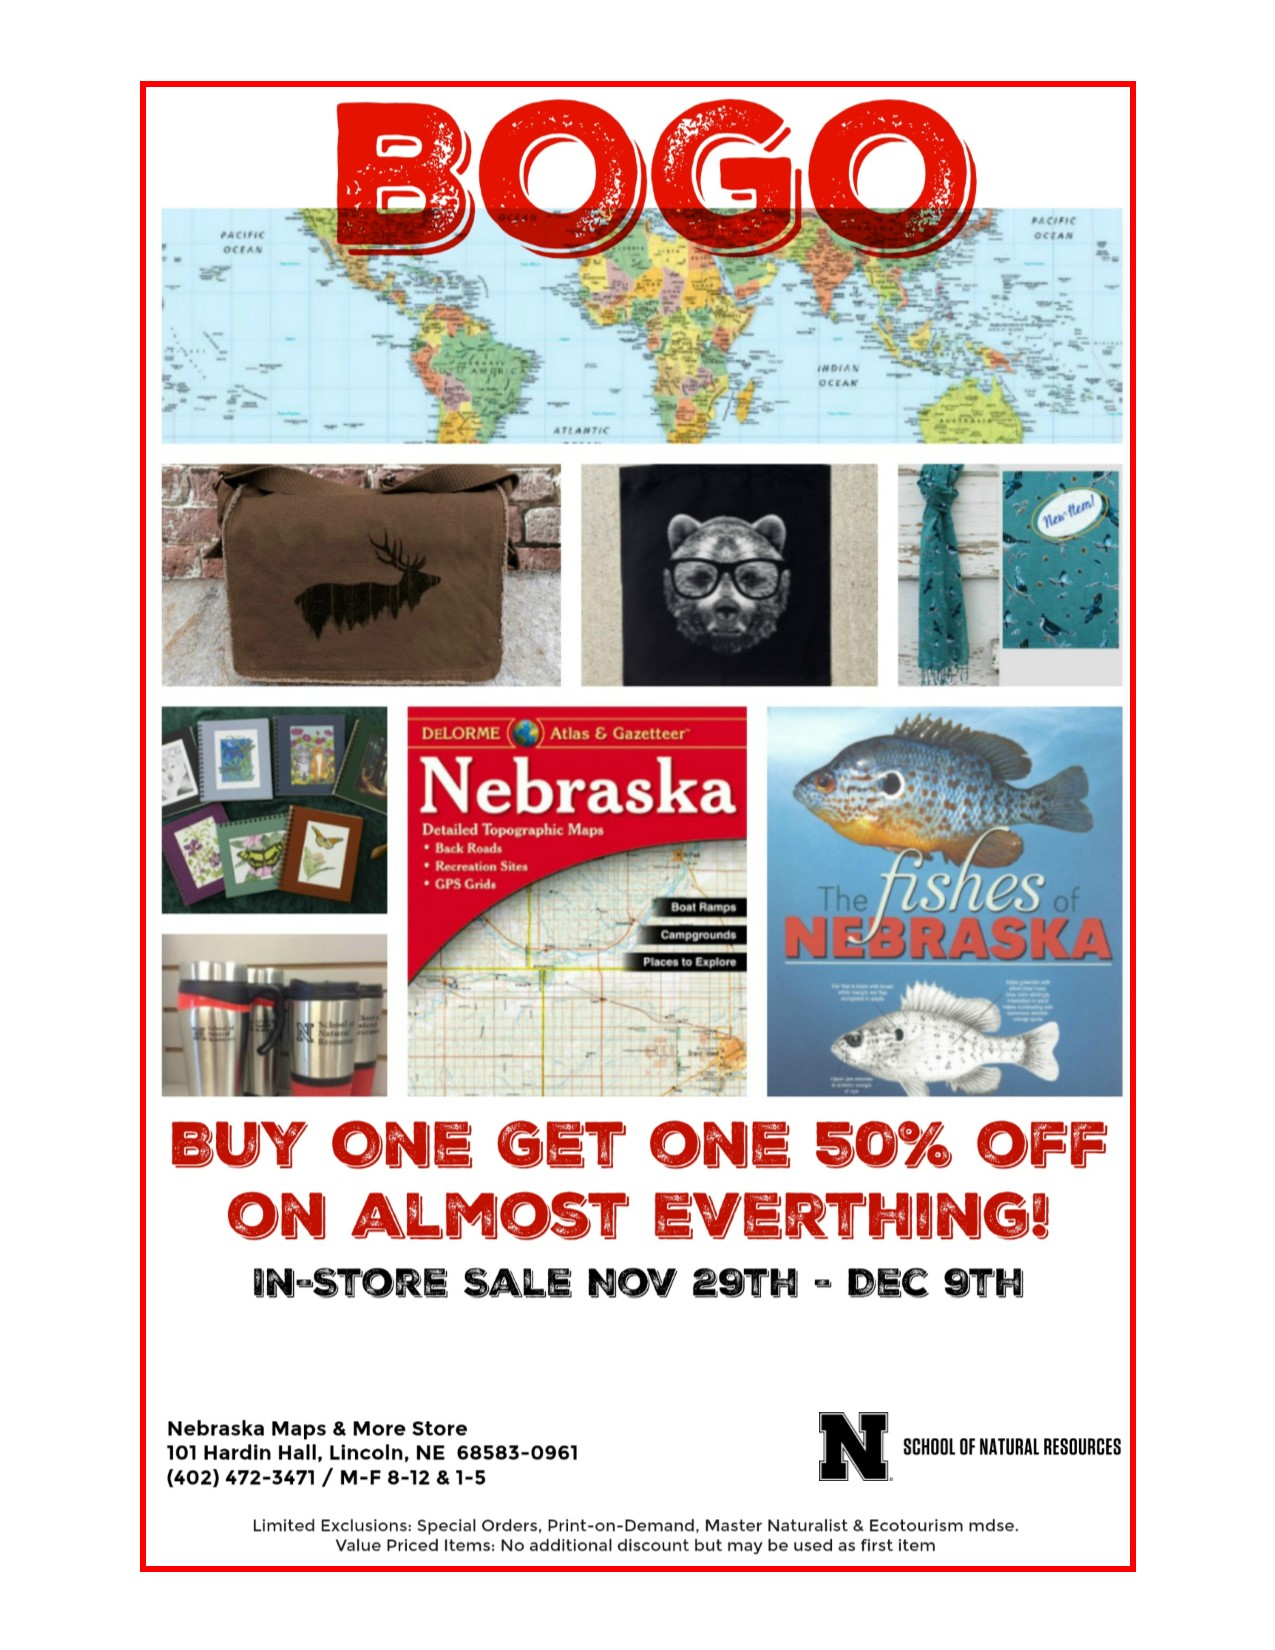 Maps & More is hosting a buy one, get one half off sale through Dec. 9. | Courtesy image